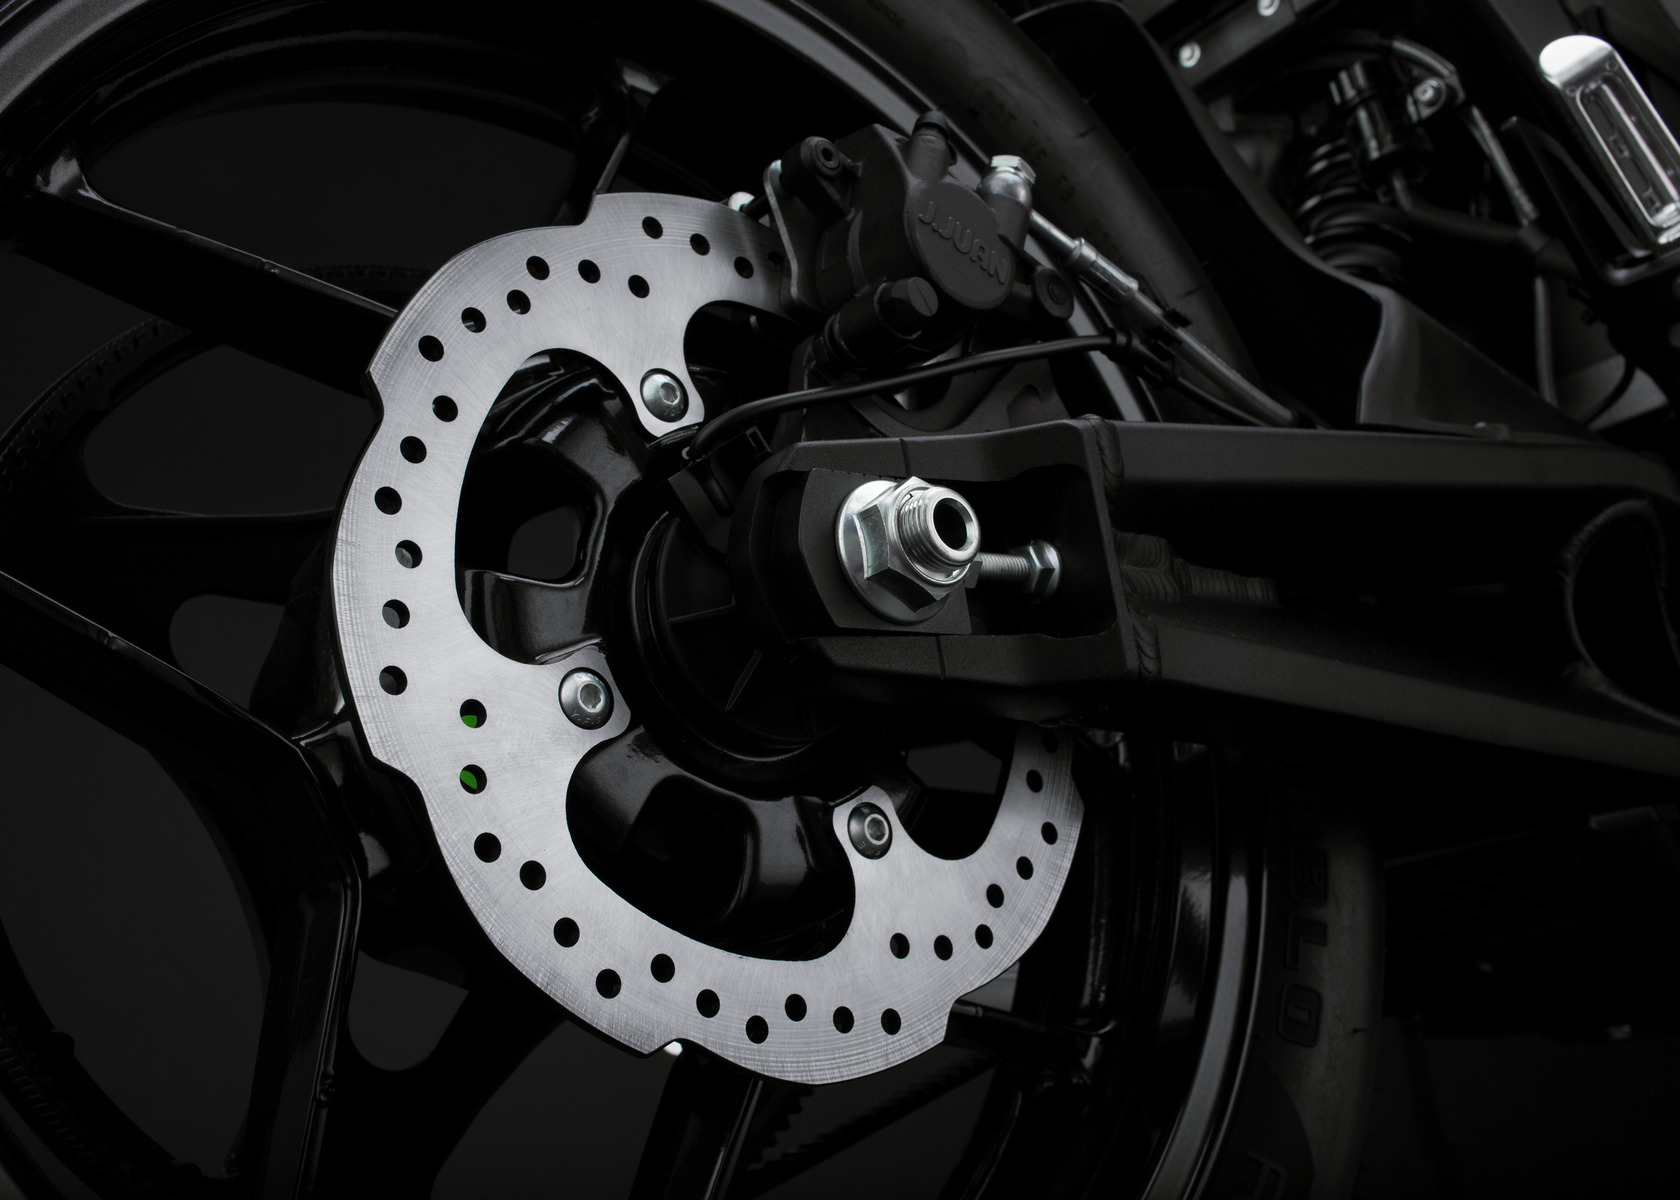 2018 Zero FXS Electric Motorcycle: Rear Brake